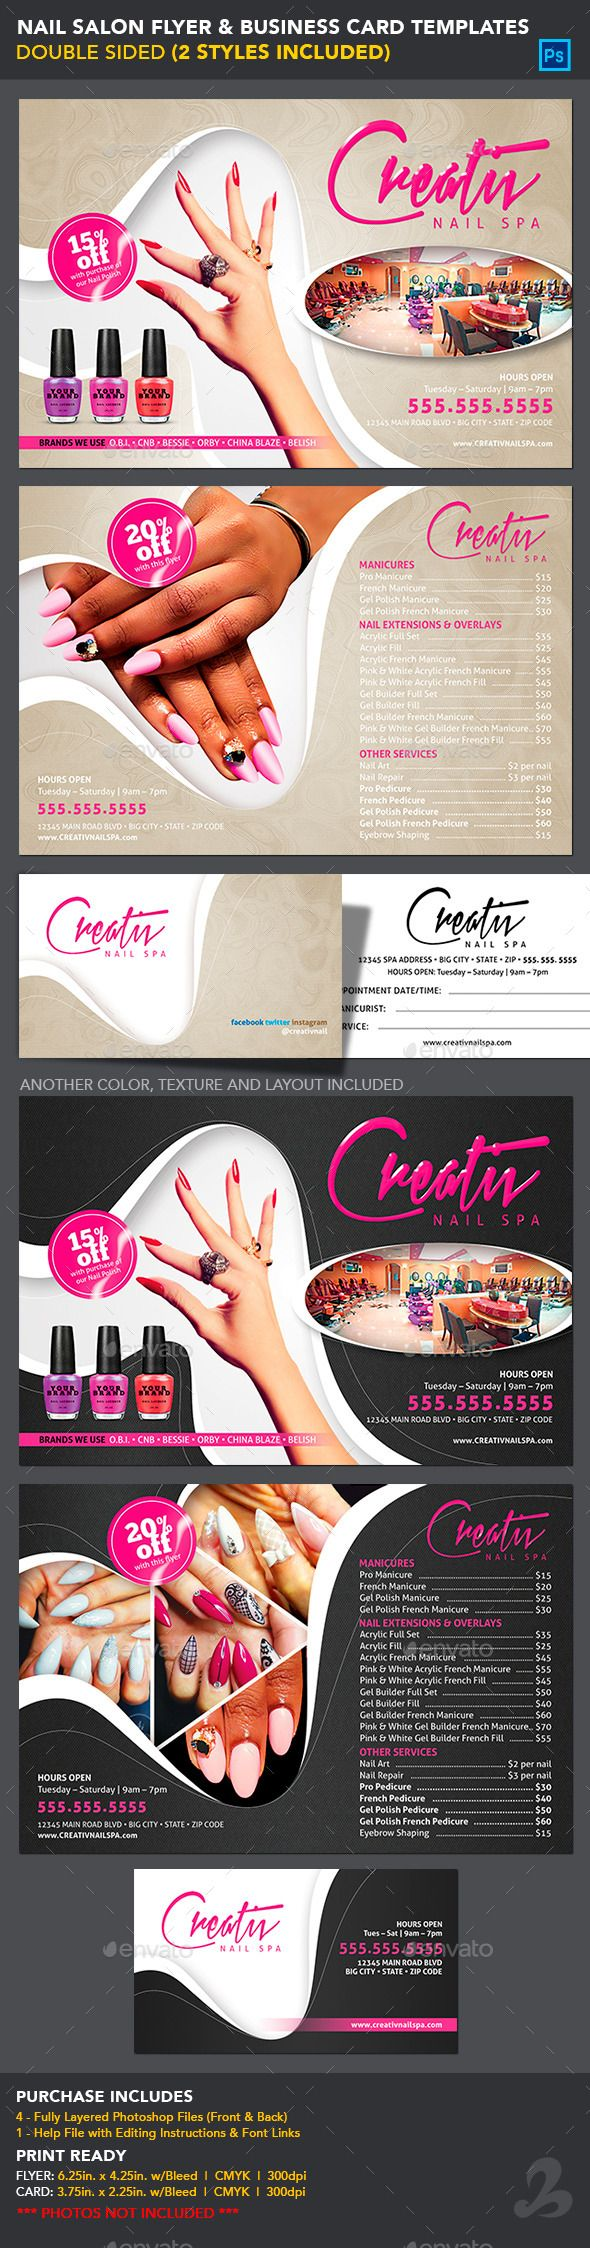 25 Best Ideas About Nail Salon Prices On Pinterest Hair Salon Prices Salon Menu And Salon